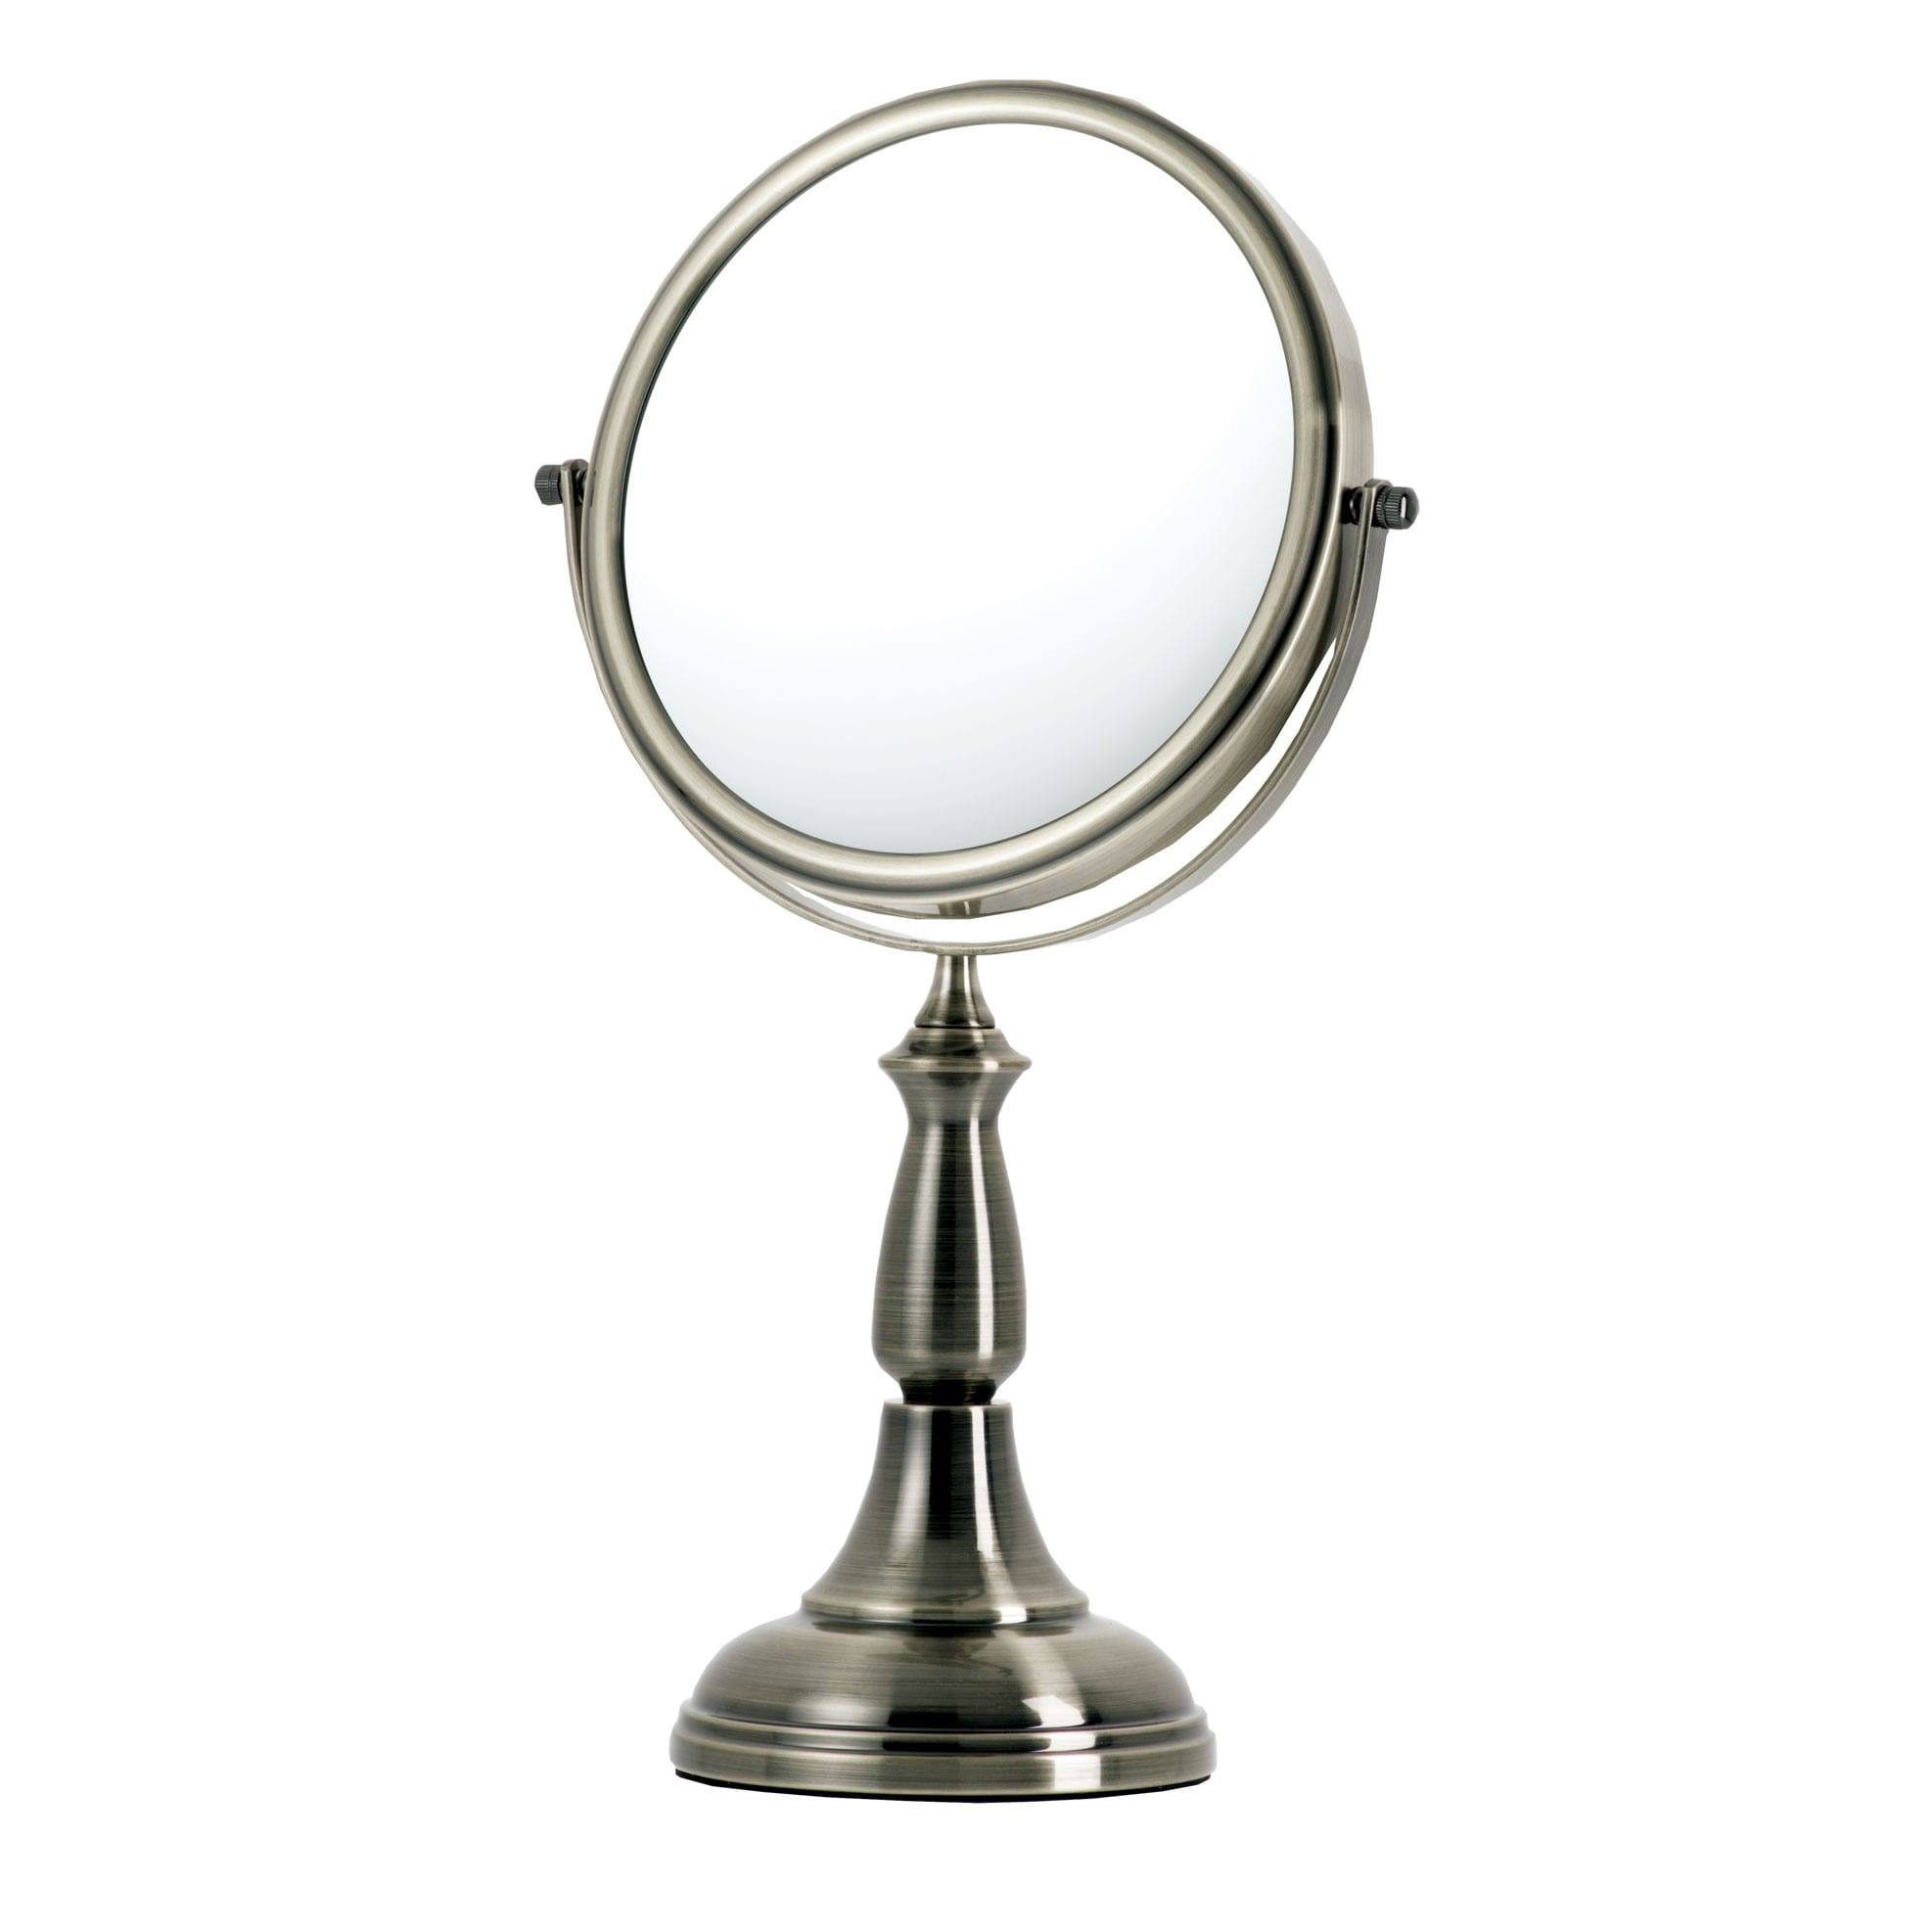 Buy vanity aids products - Danielle Oil Rubbed Bronze Vanity Mirror (D962)